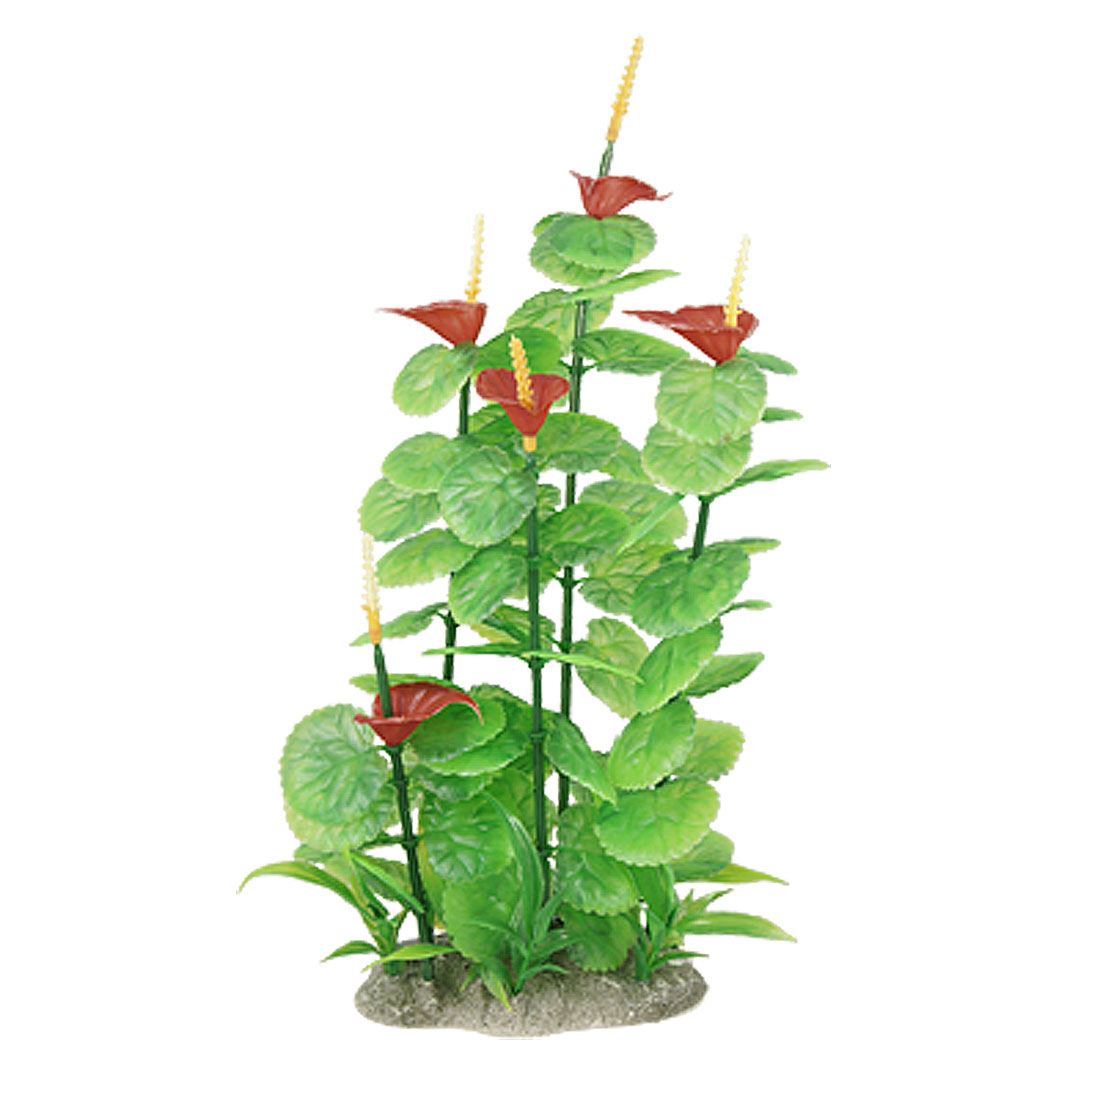 Fish Tank Red Flower Green Plastic Ornament Grass Plant